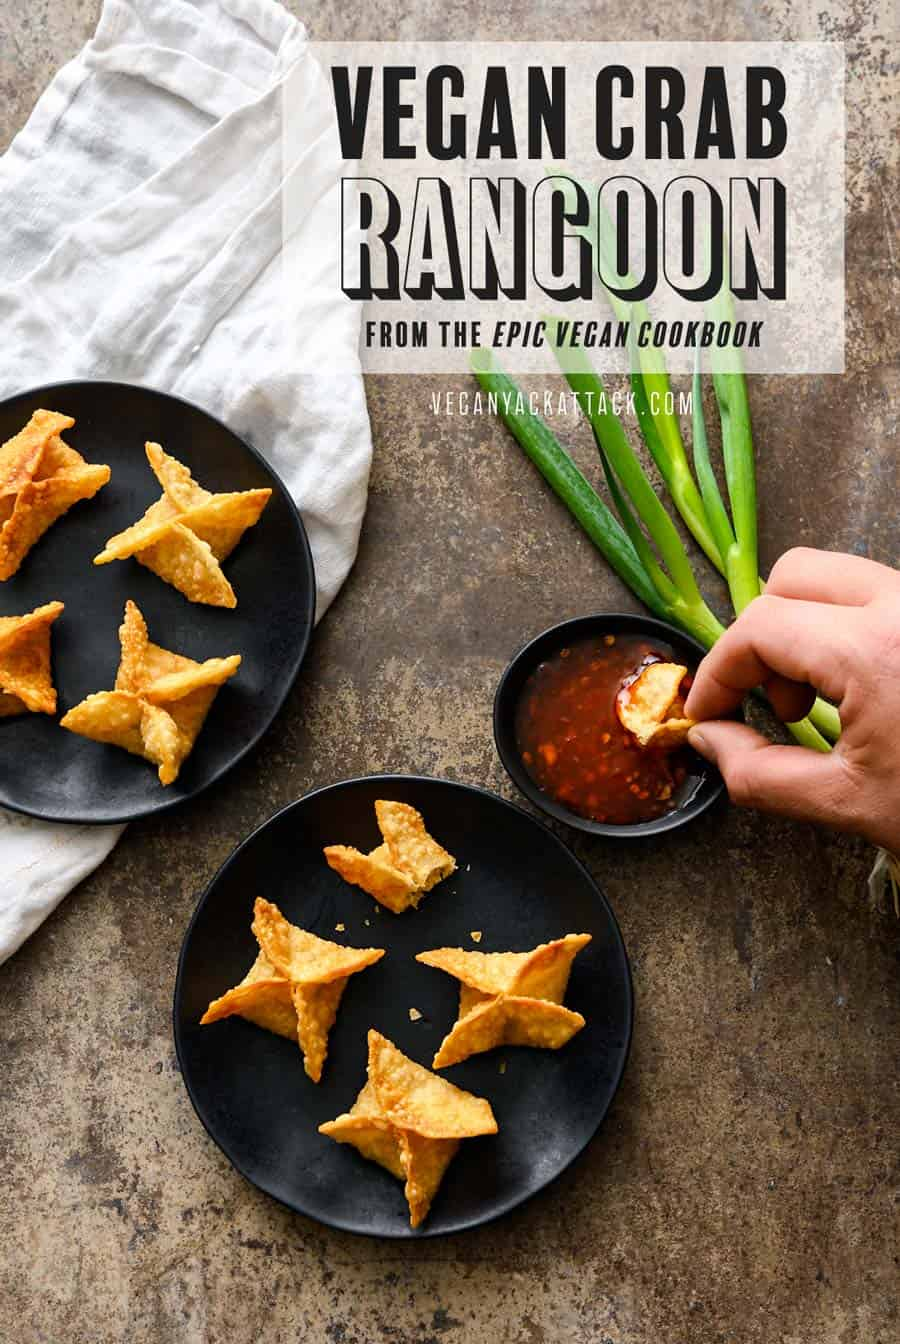 "A hand dipping vegan Crab Rangoon into sweet chili sauce, with two black plates of Crab Rangoon, on a napkin and grey background. Text on image reads ""Vegan Crab Rangoon from the Epic Vegan Cookbook"""